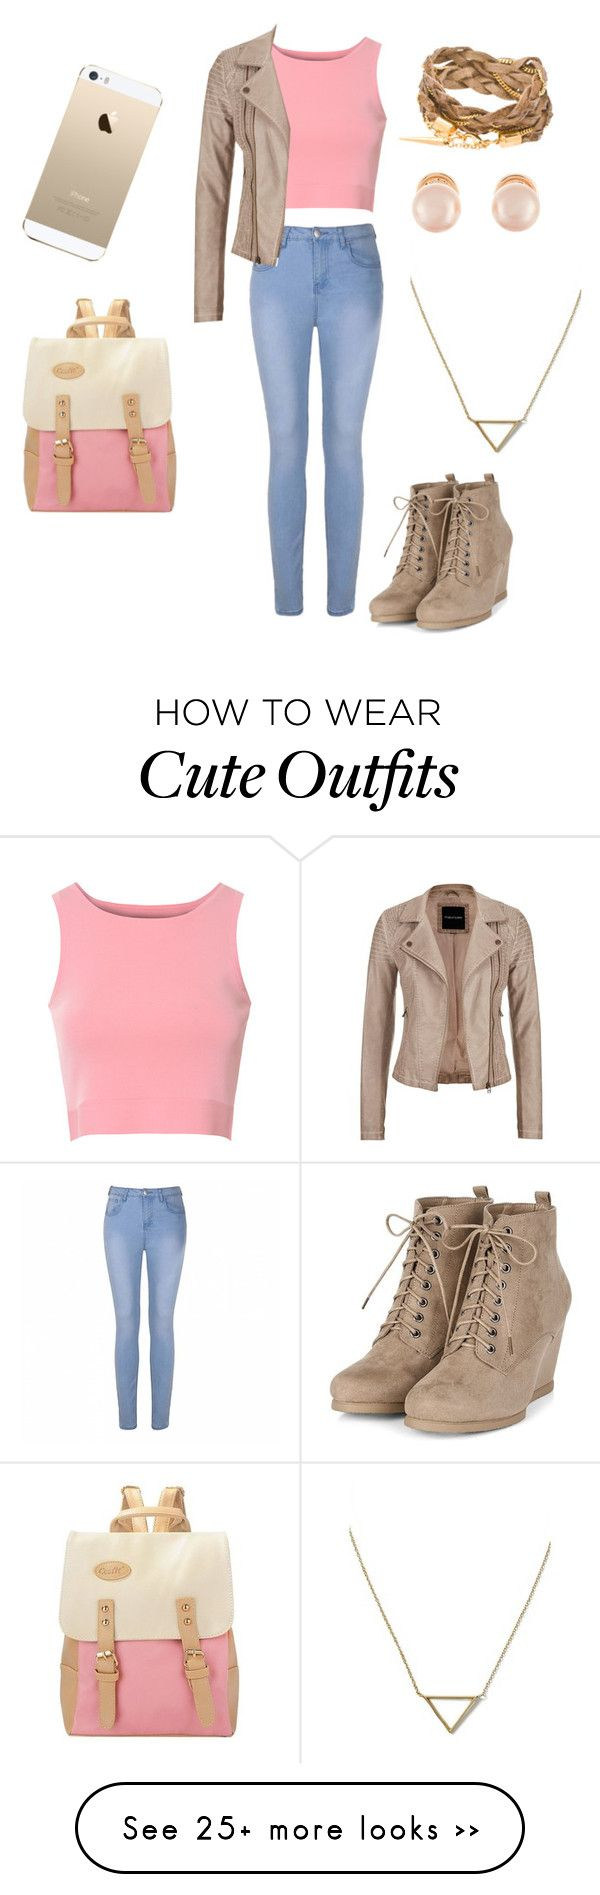 """cute outfit for fall with a hint of pink"" by baileymarie1433 on Polyvore featuring Glamorous, Ally Fashion, maurices, Kenneth Jay Lane, FingerPrint Jewellry and Banana Republic"